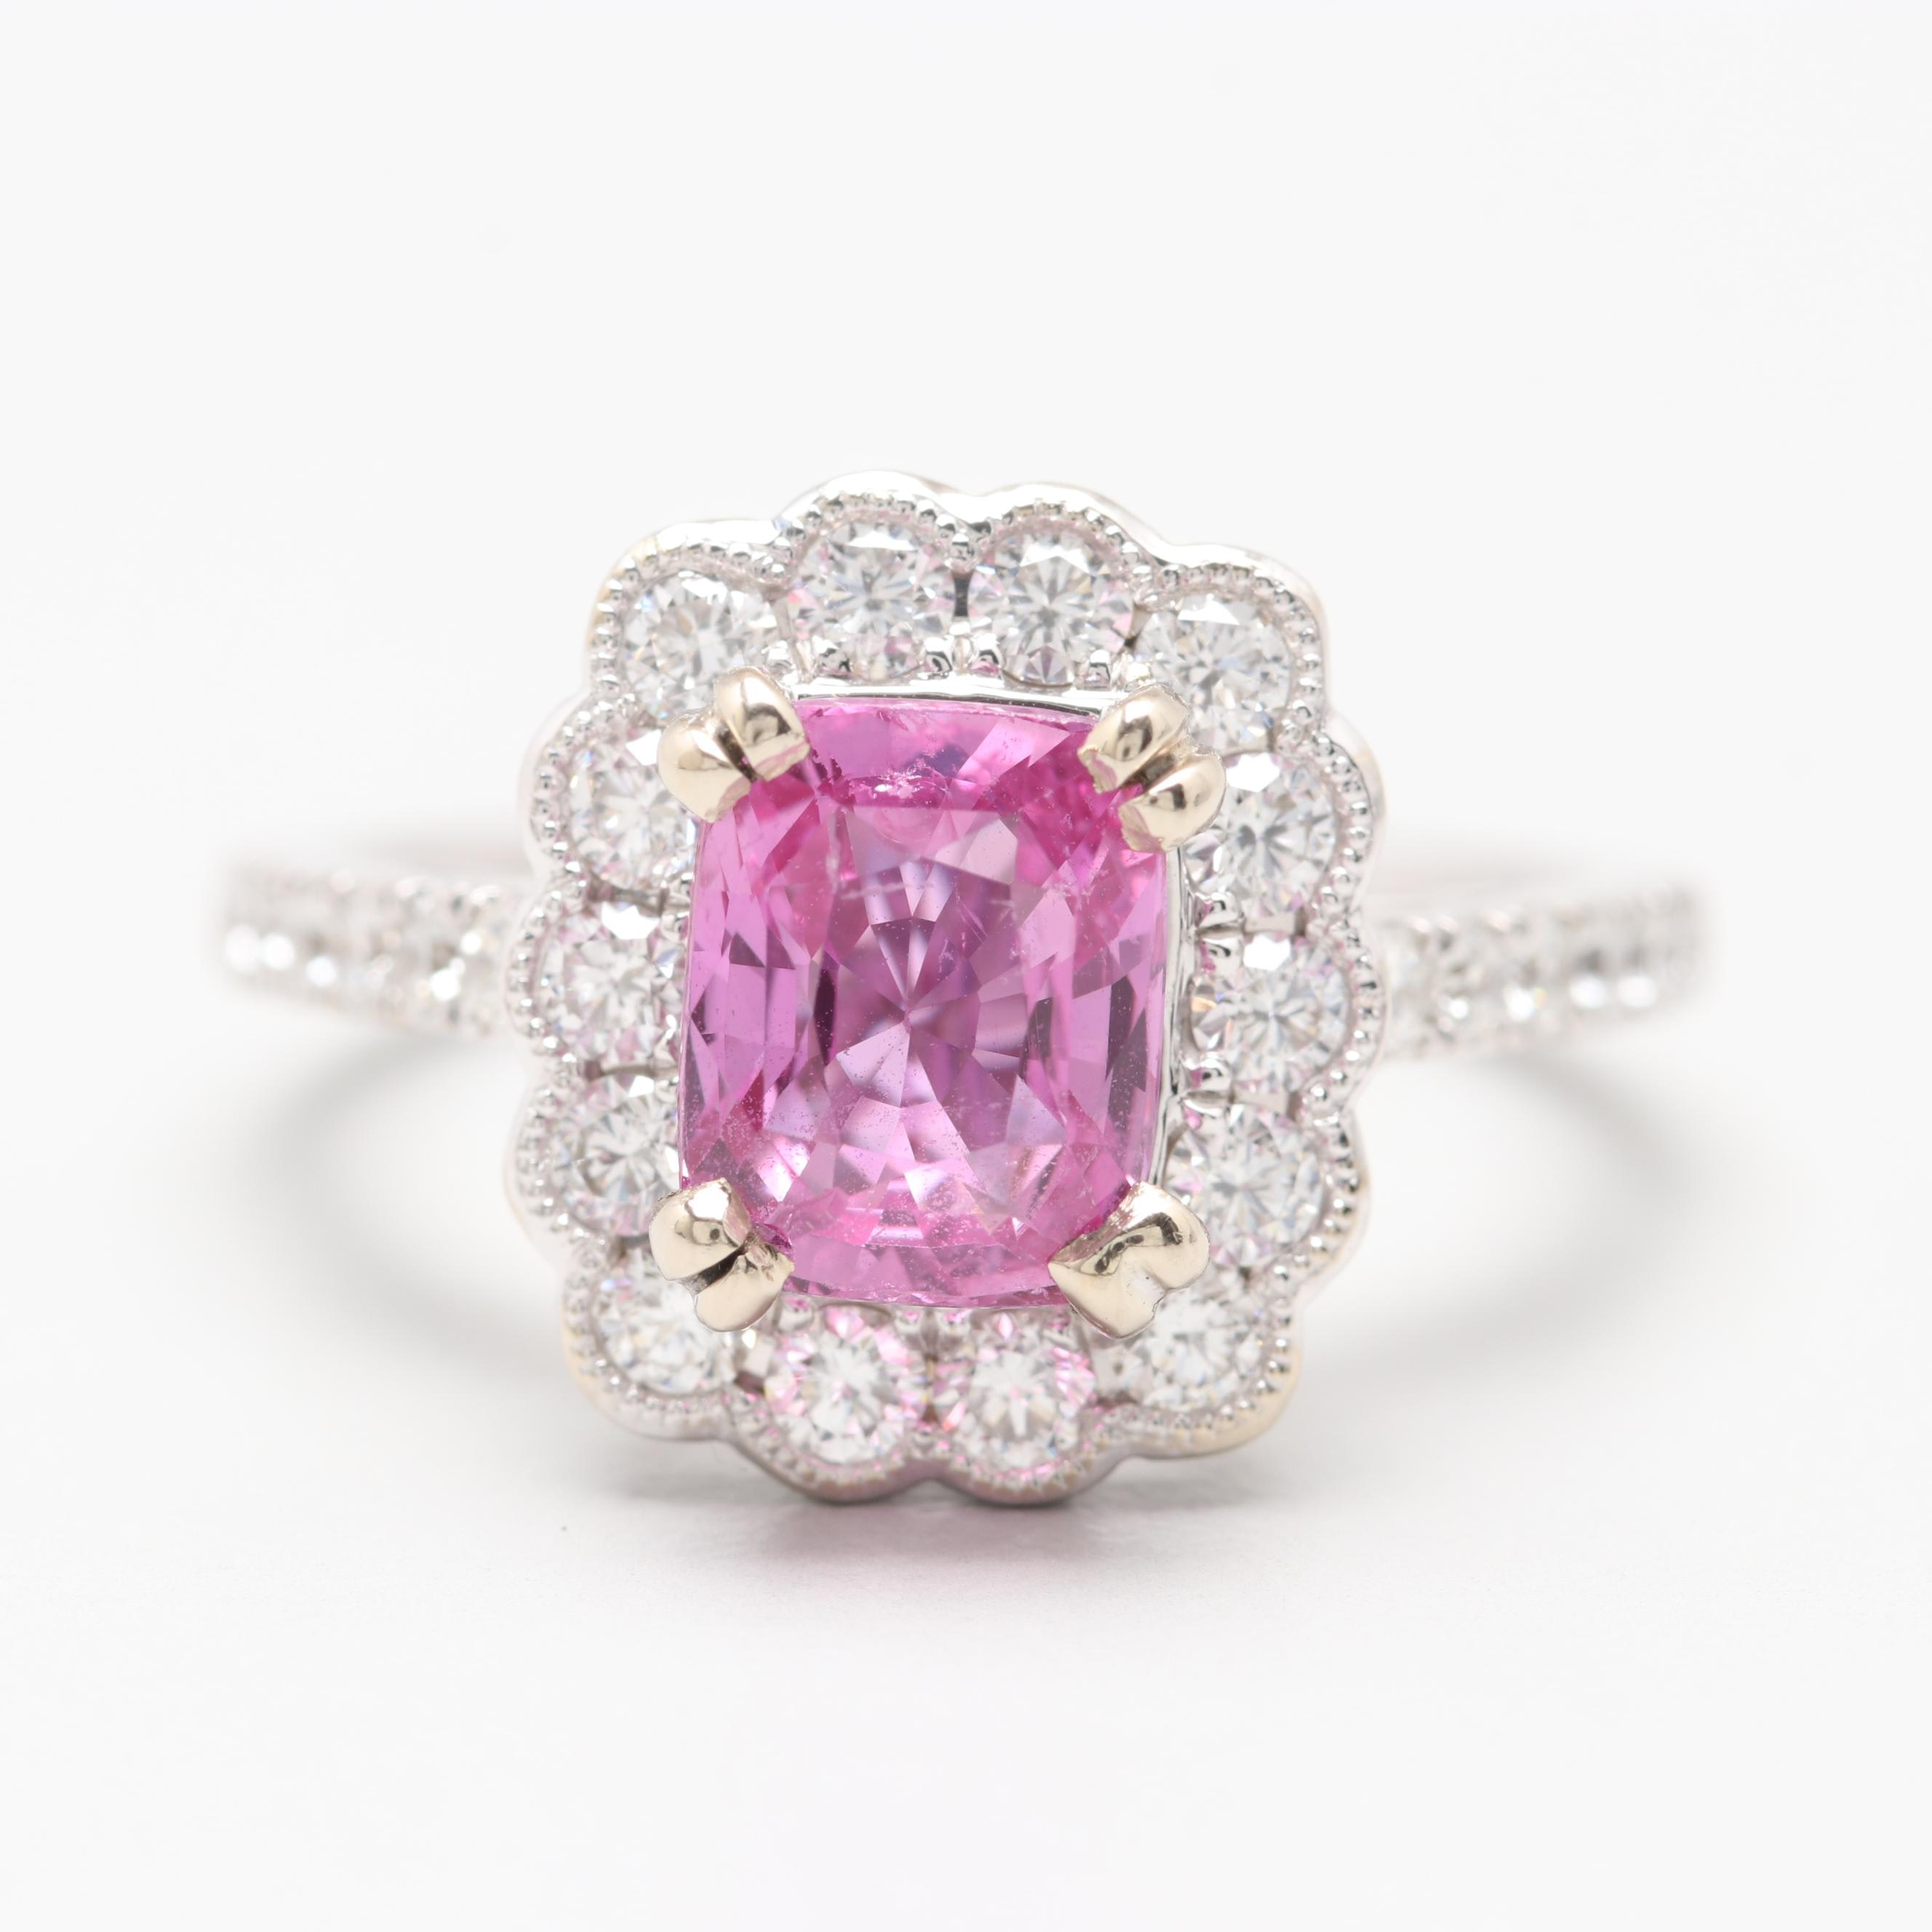 14K White Gold 1.82 CT Pink Sapphire and Diamond Ring